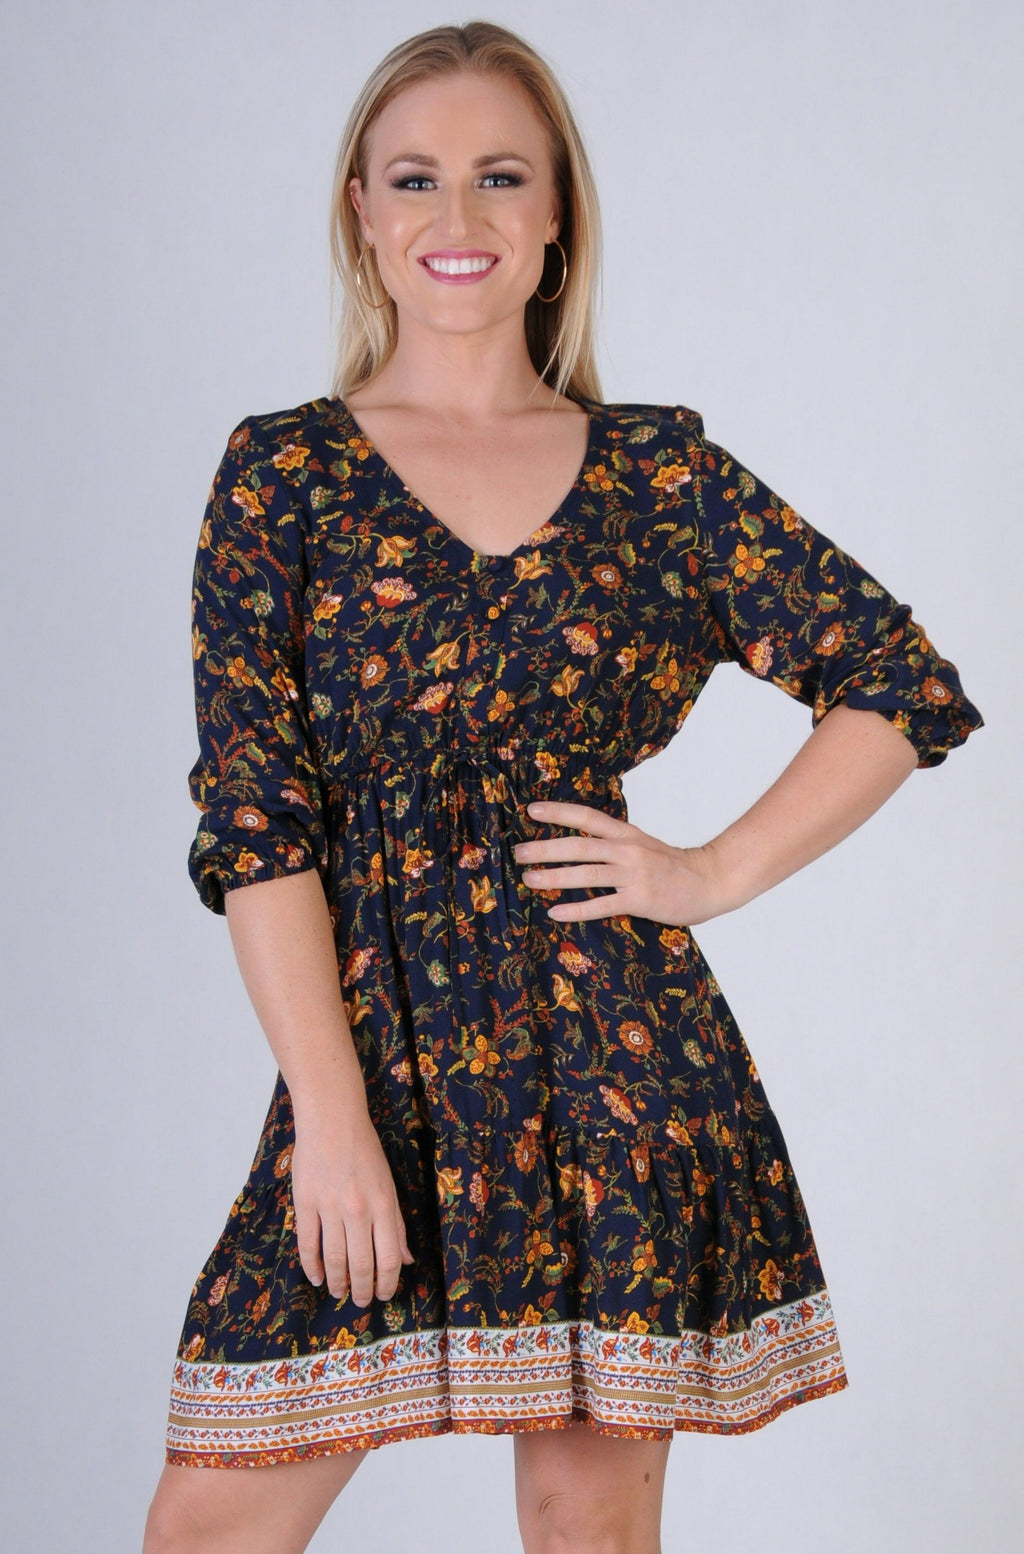 VJHD231 - WALNUT DRESS - ARIZONA NAVY